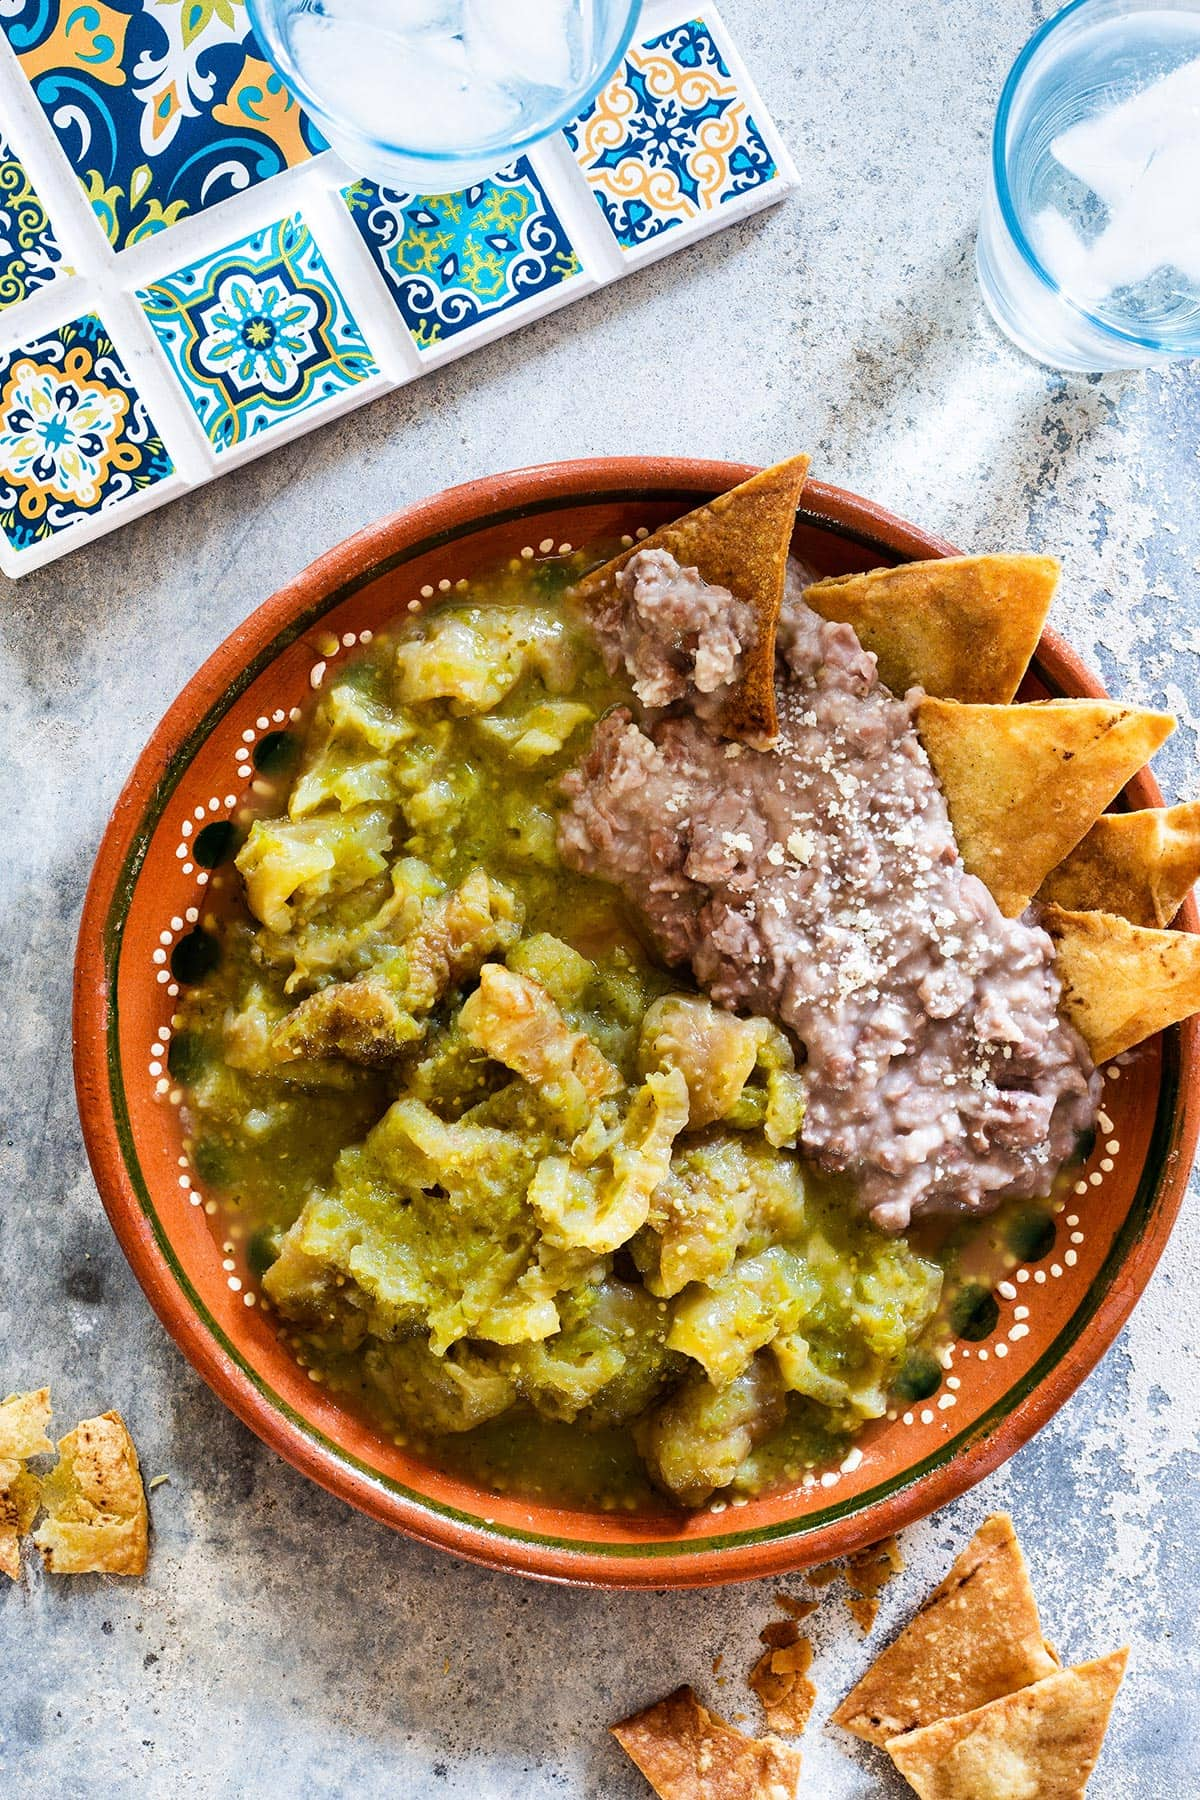 Chicharron en salsa verde served with refried beans and corn chips.